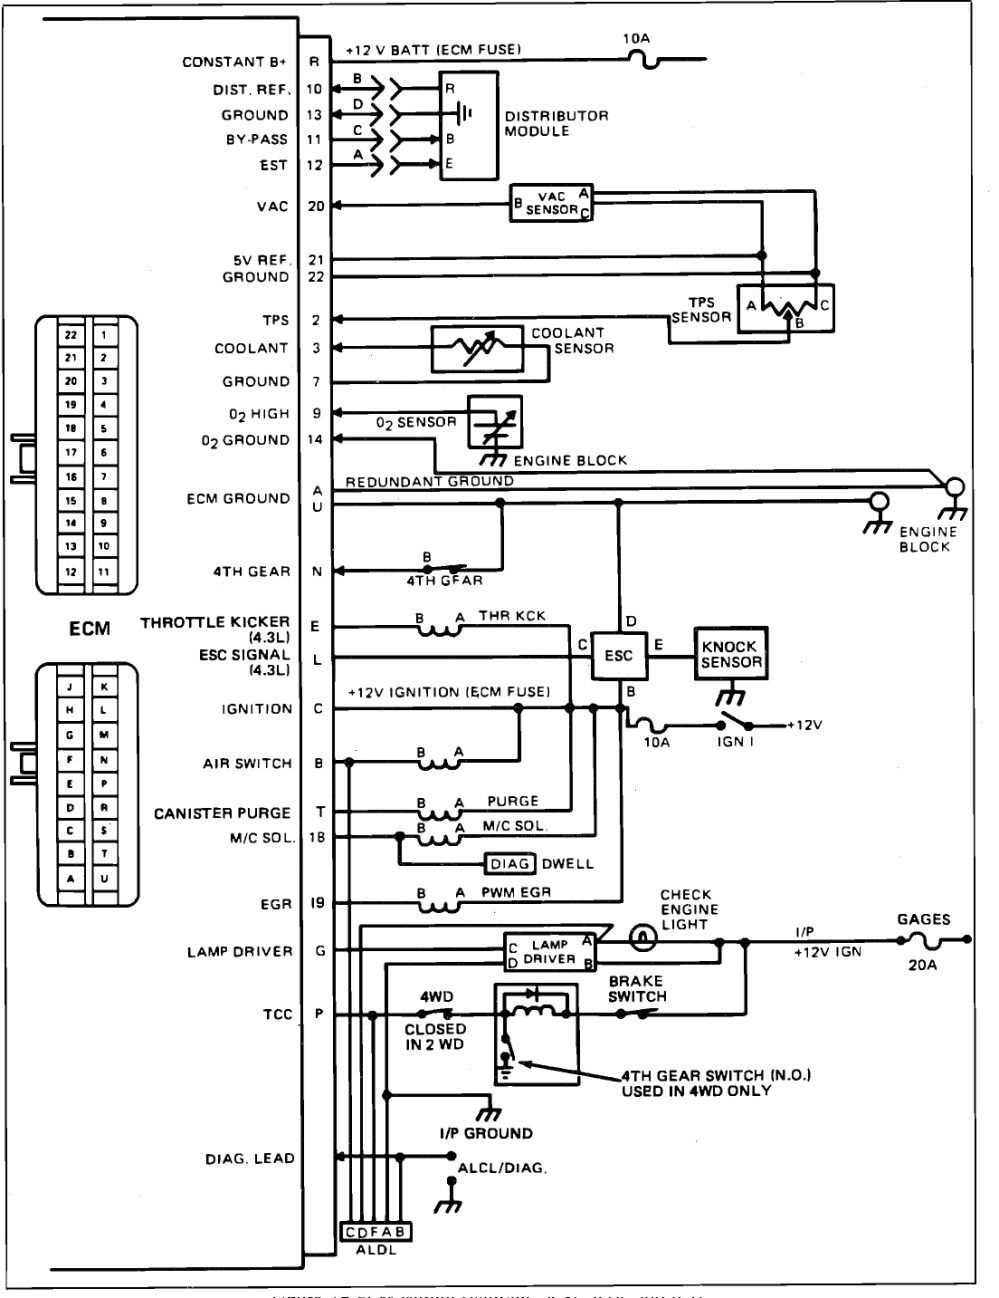 medium resolution of wiring diagram 1991 chevrolet van wiring diagram blogs chevy tail light wiring diagram chevrolet g20 wiring diagram